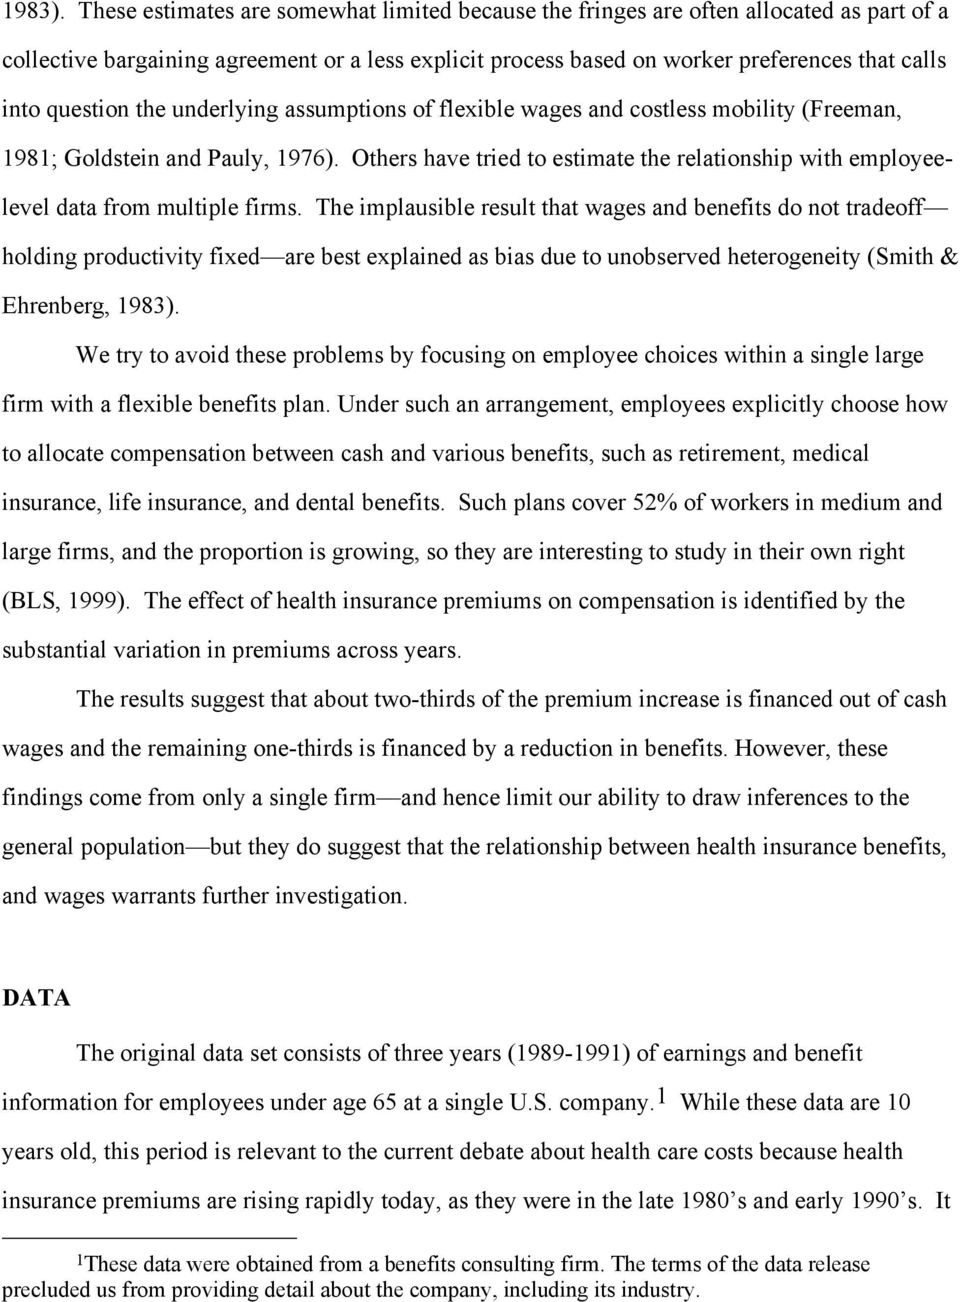 question the underlying assumptions of flexible wages and costless mobility (Freeman, 1981; Goldstein and Pauly, 1976).